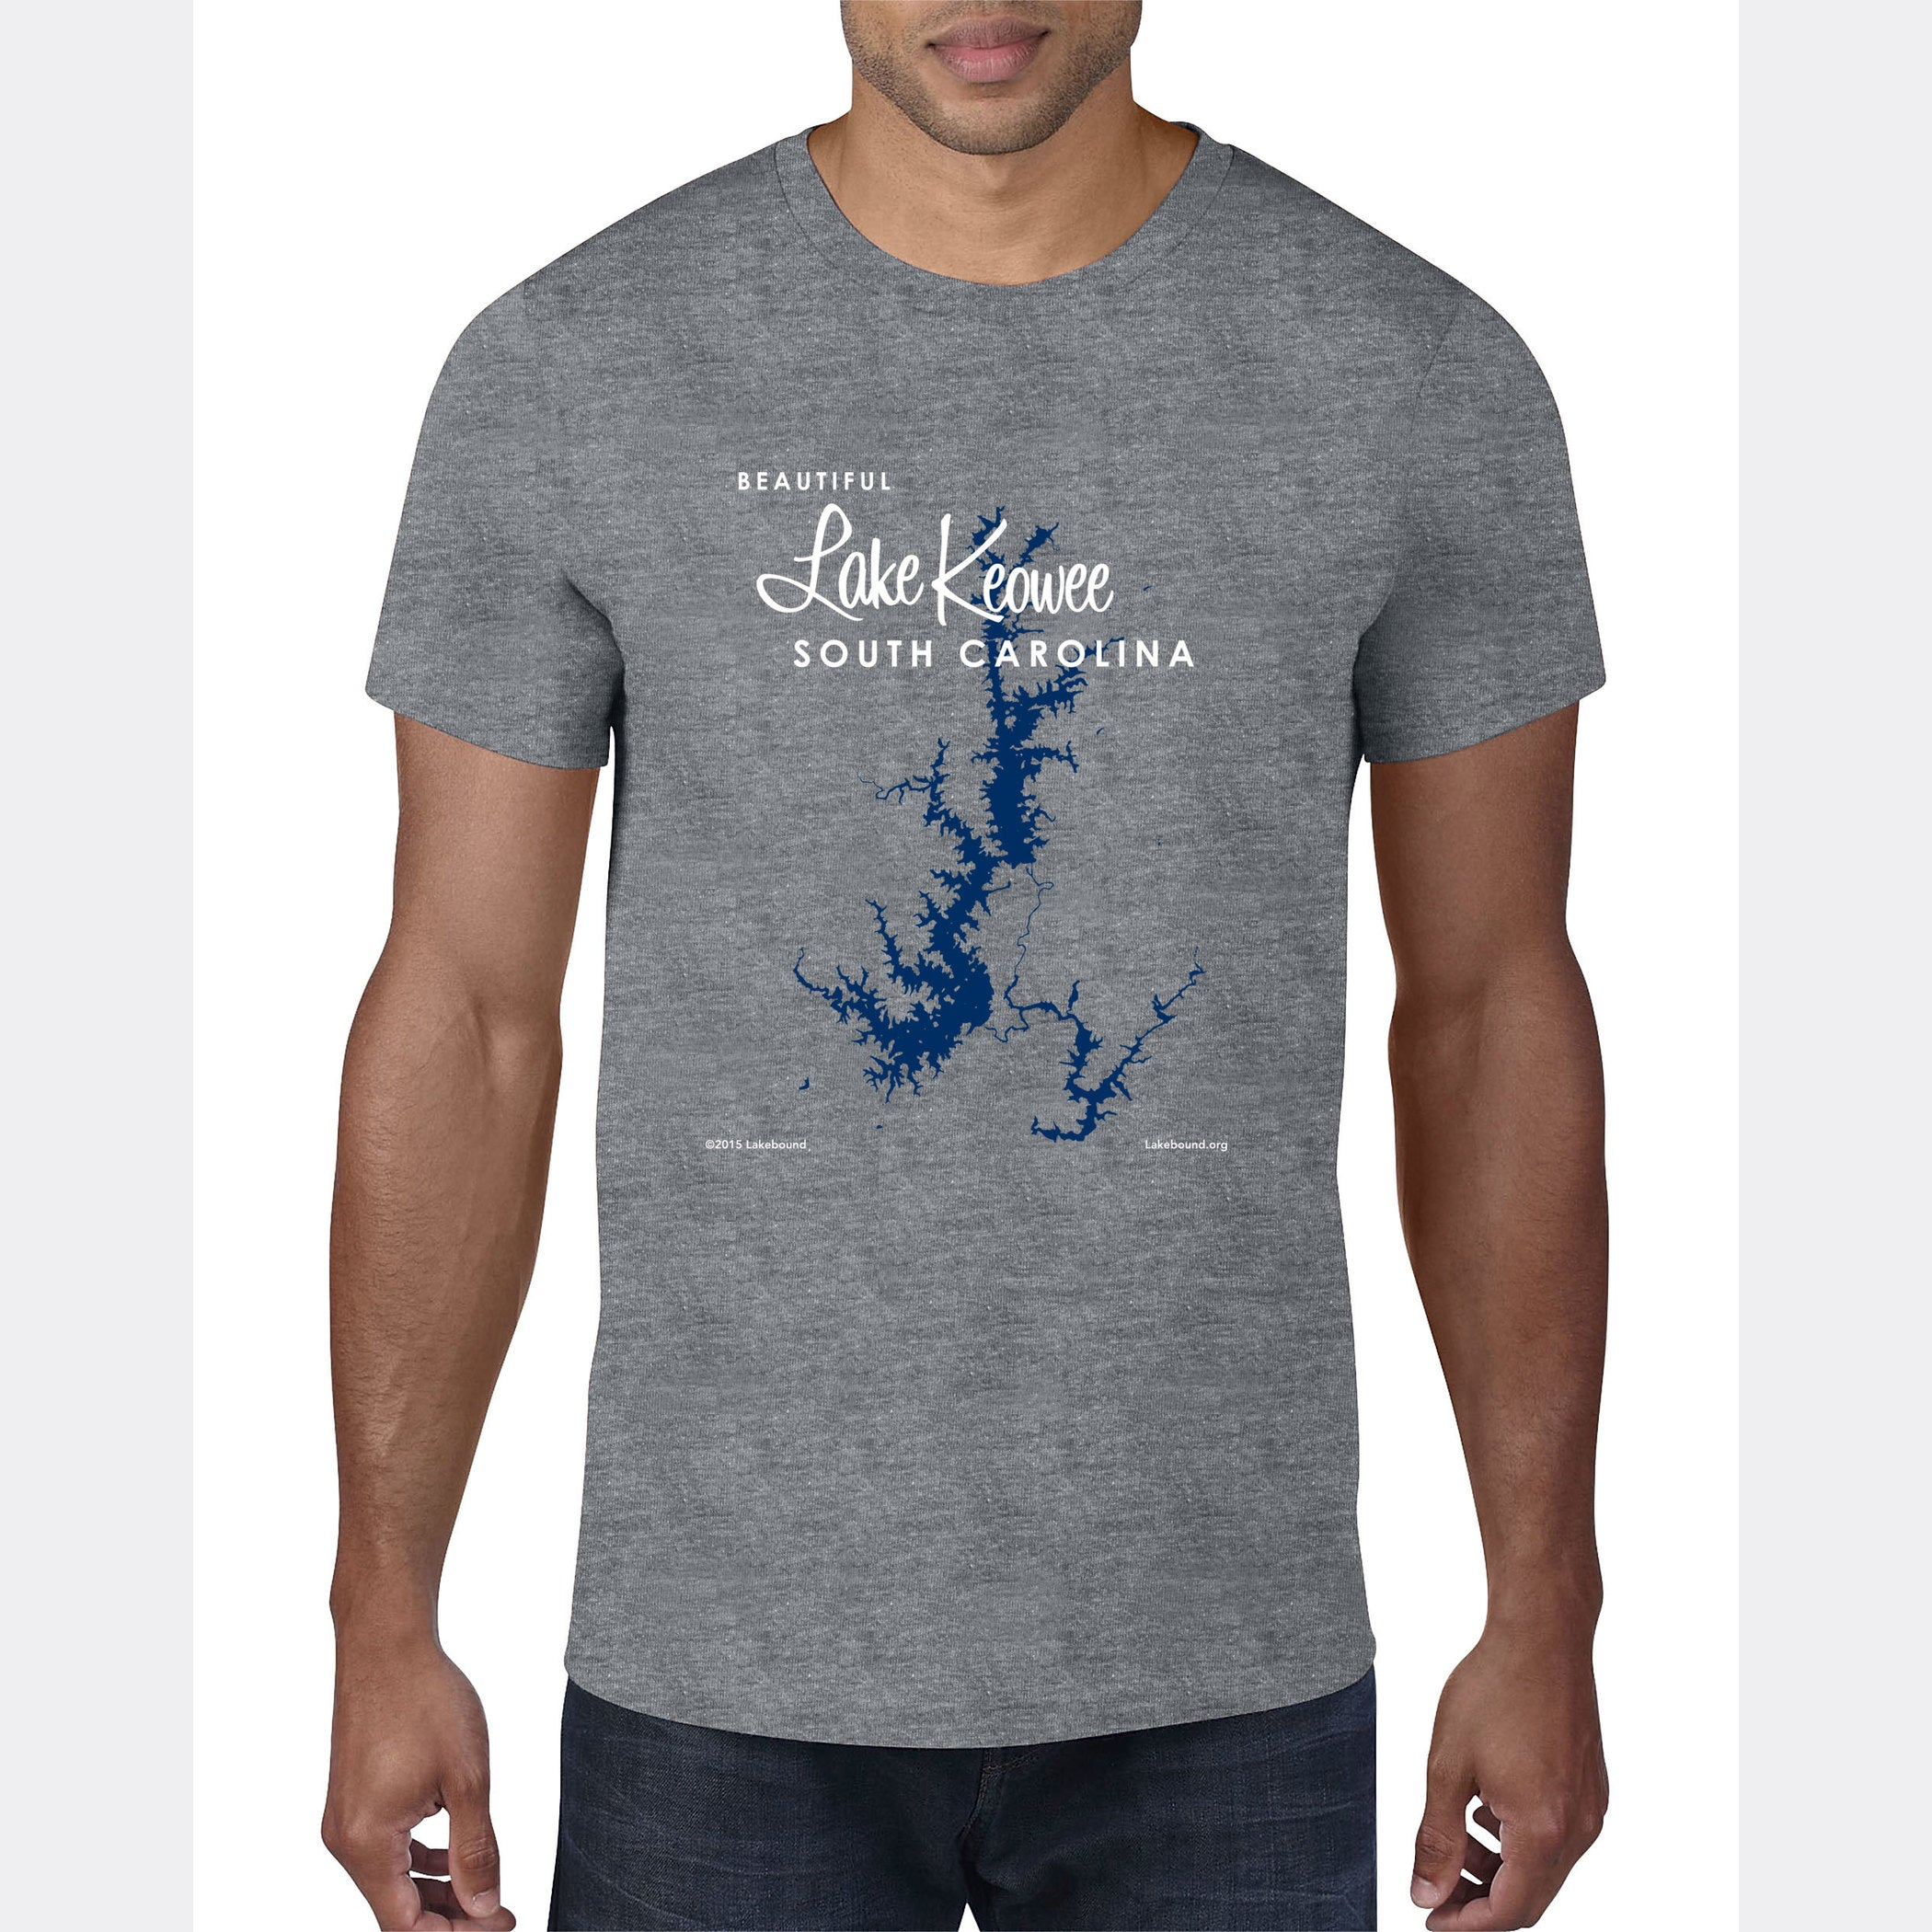 Lake Keowee South Carolina, T-Shirt Map Art on topo map of lake wateree, topo map of lake murray, topo map of lake lanier, topo map of lake chatuge, topo map of smith mountain lake, topo map of dale hollow lake, topo map of lake of the ozarks,